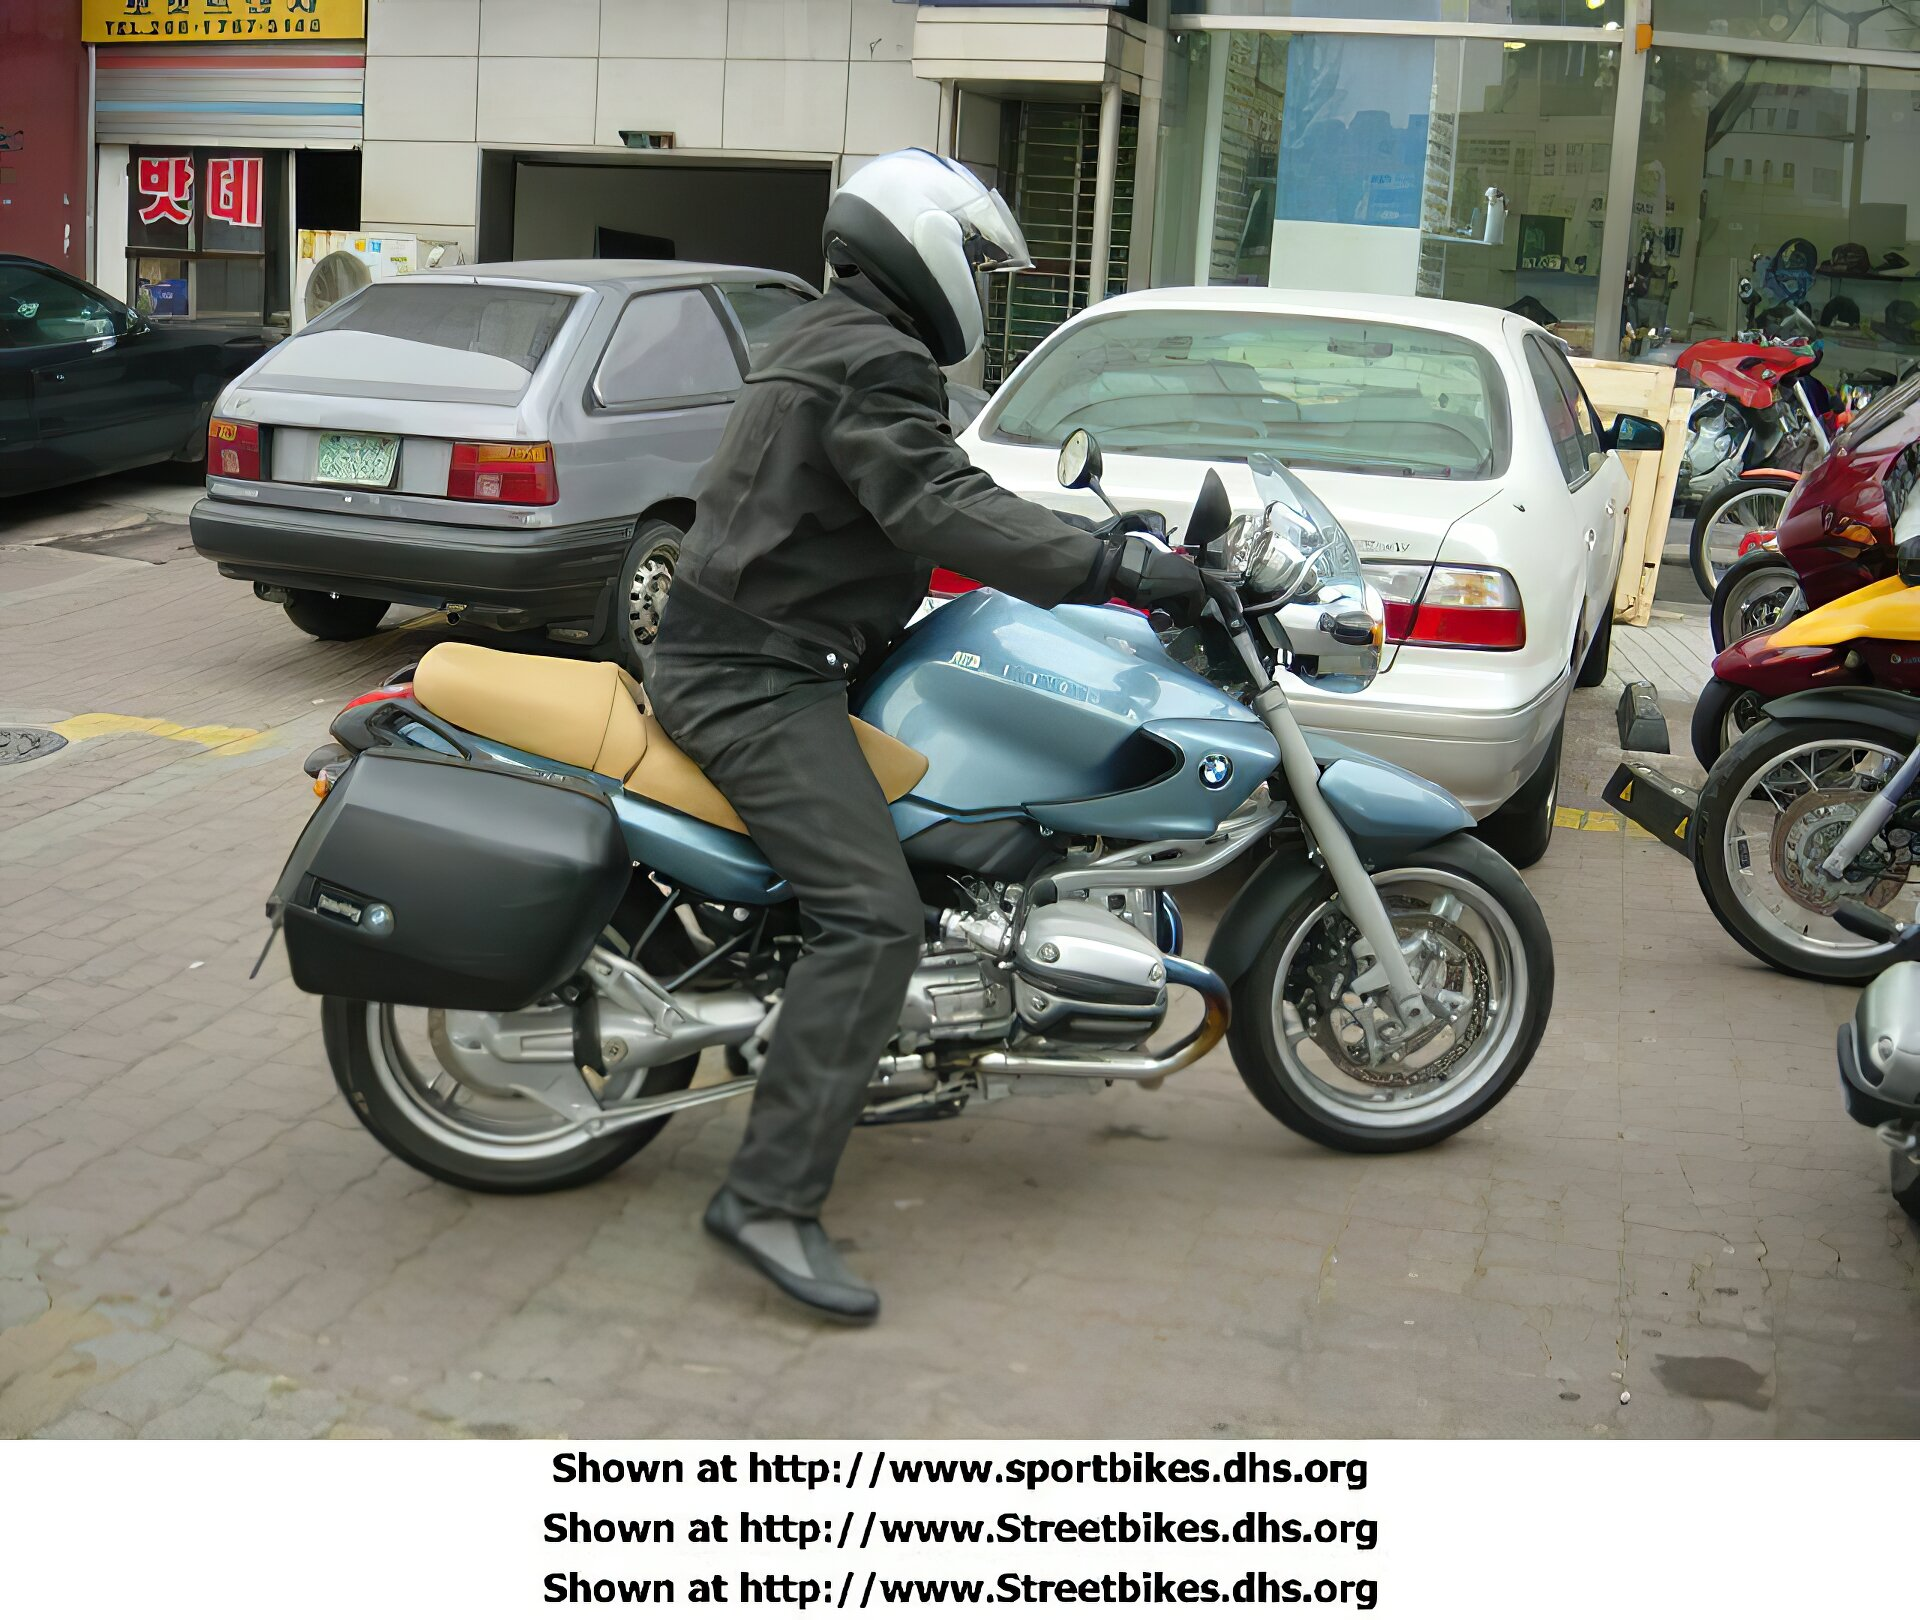 BMW R1100/R1200 Models - ID: 280